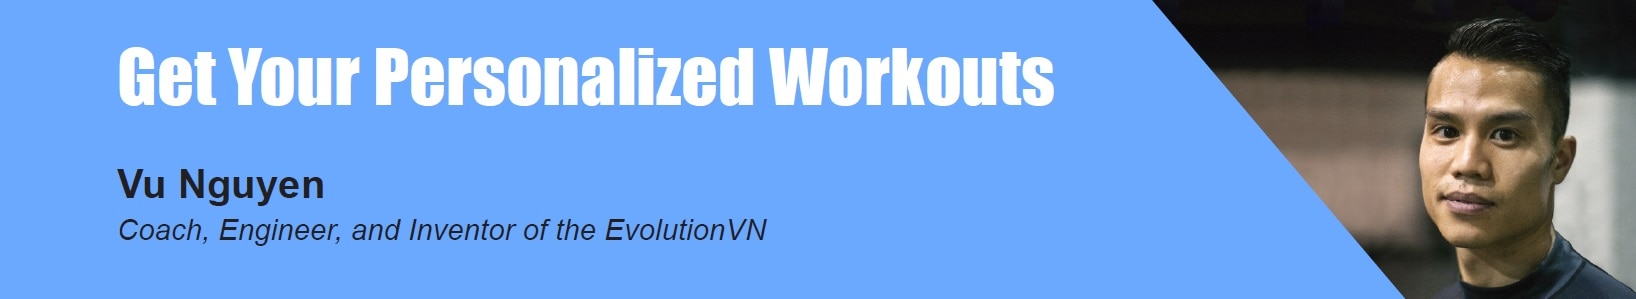 Free Personalized Workouts by Vu